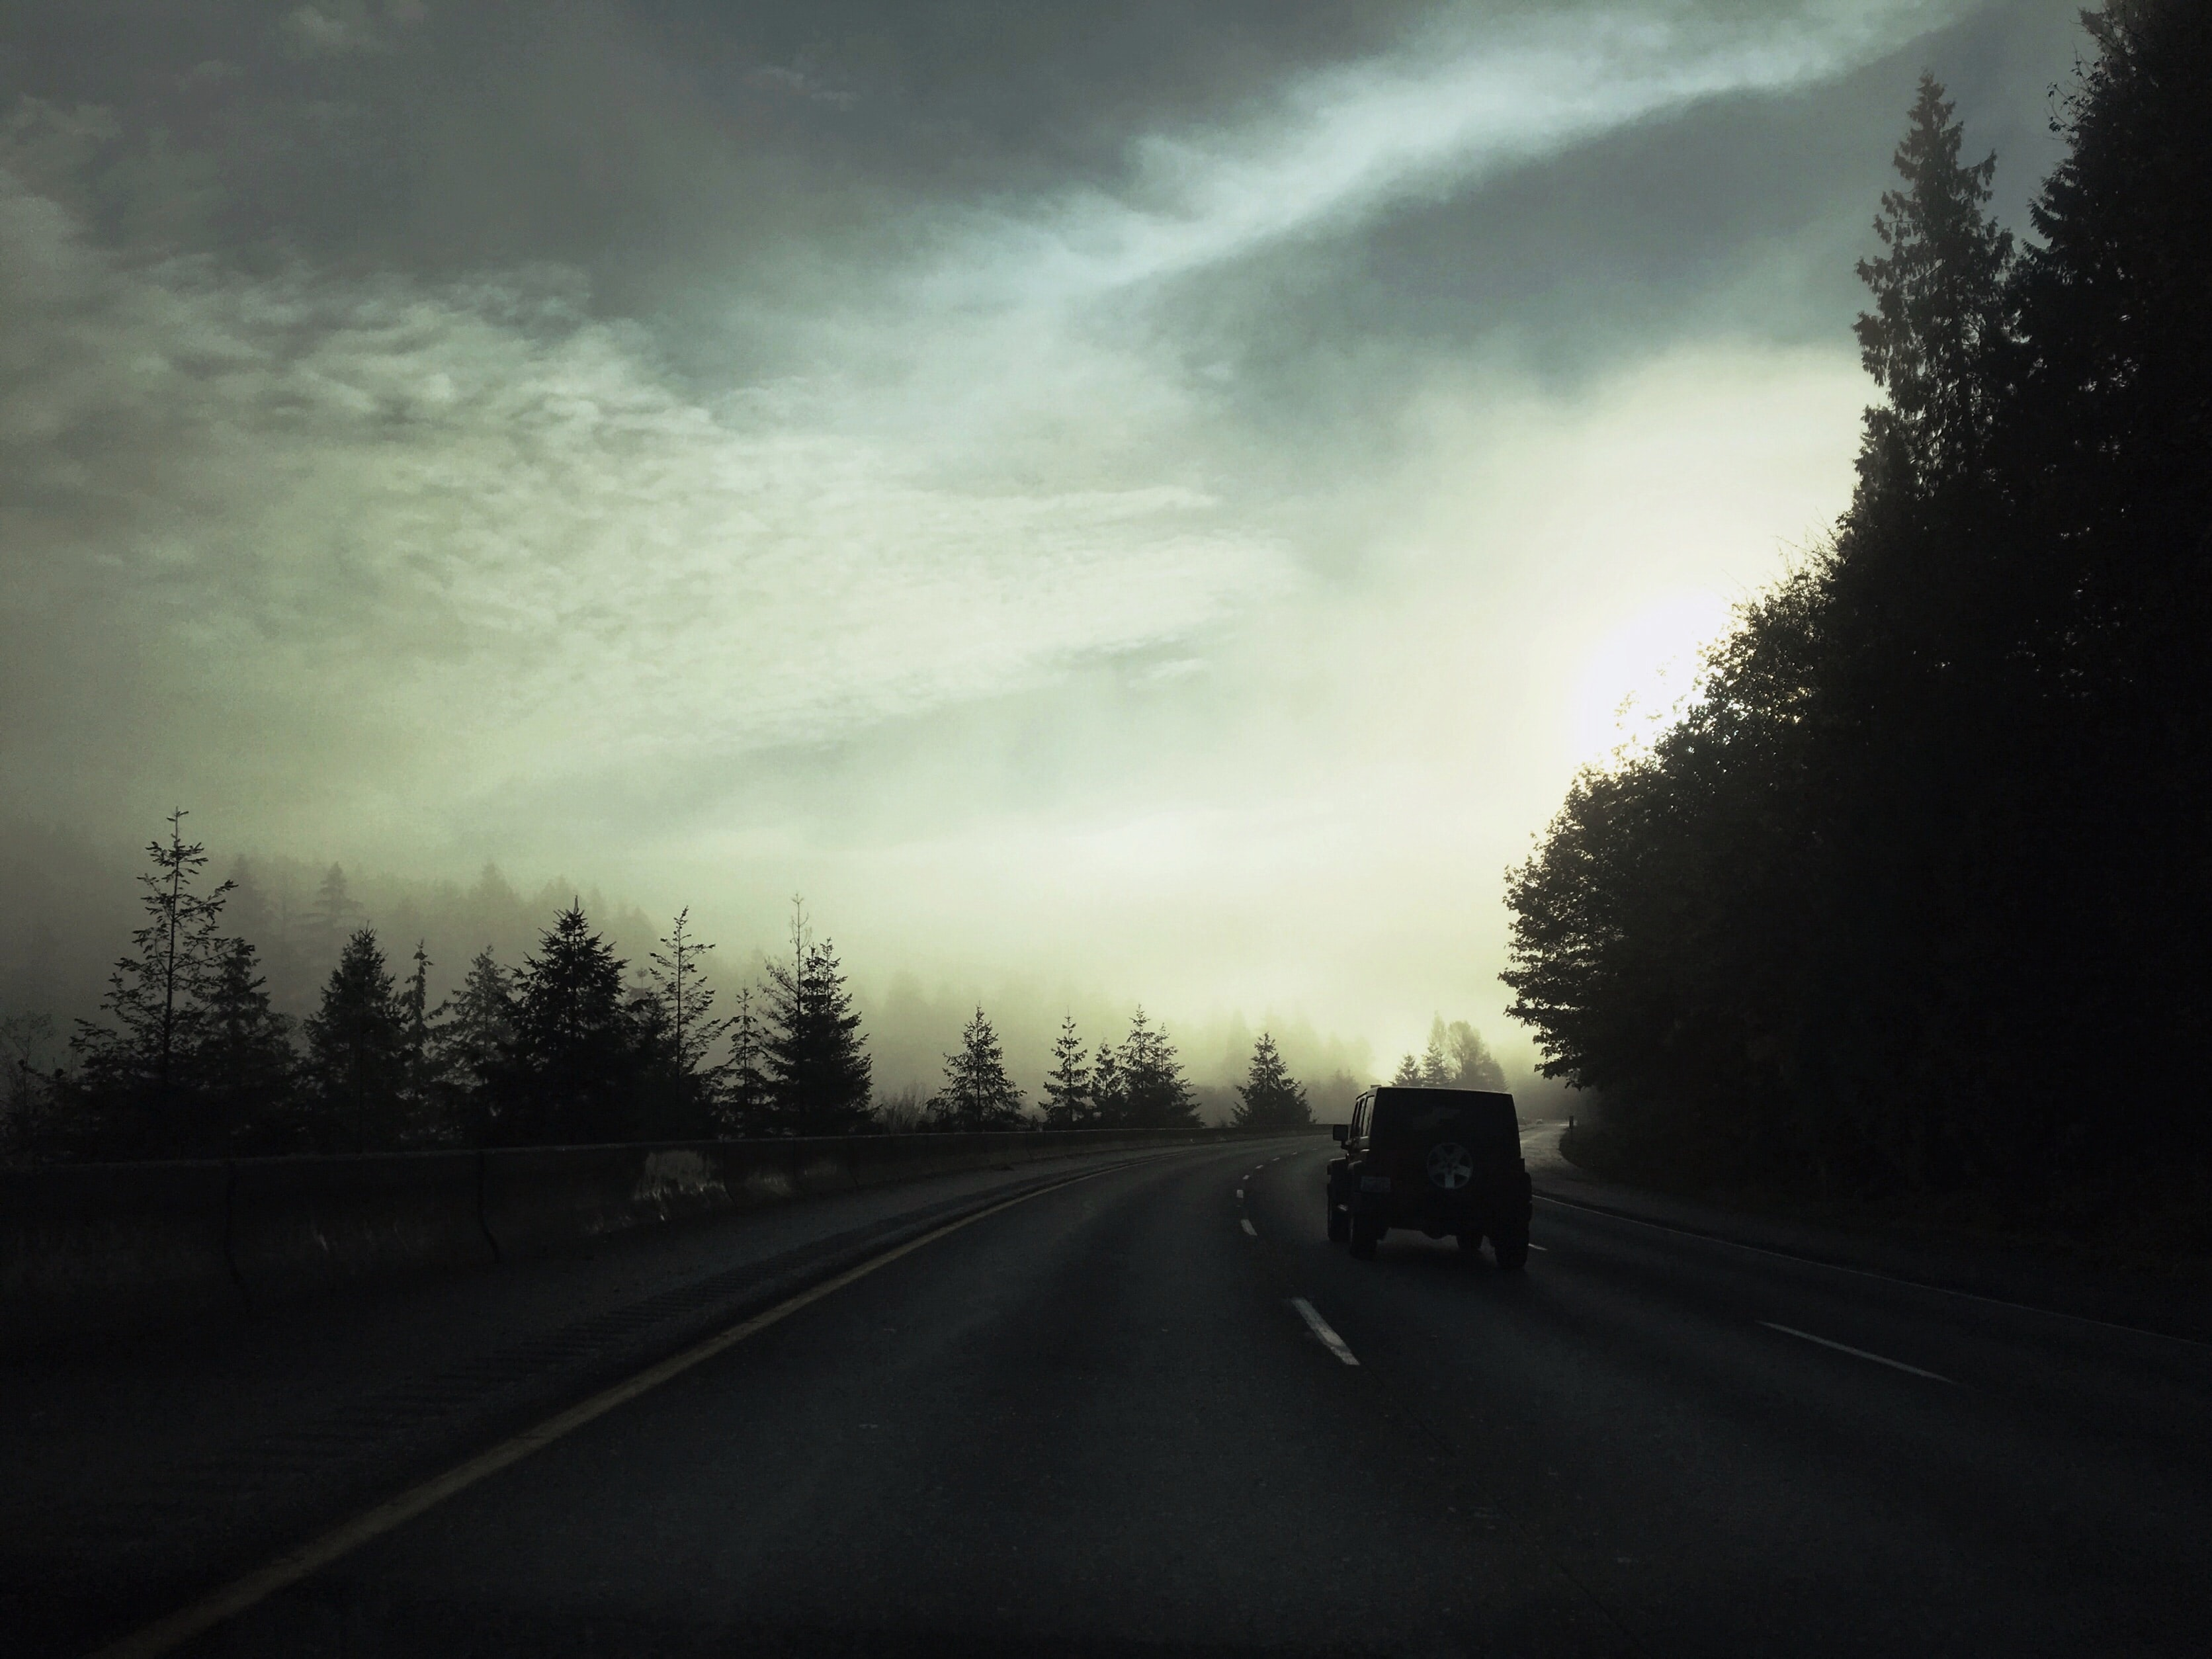 car passing on road